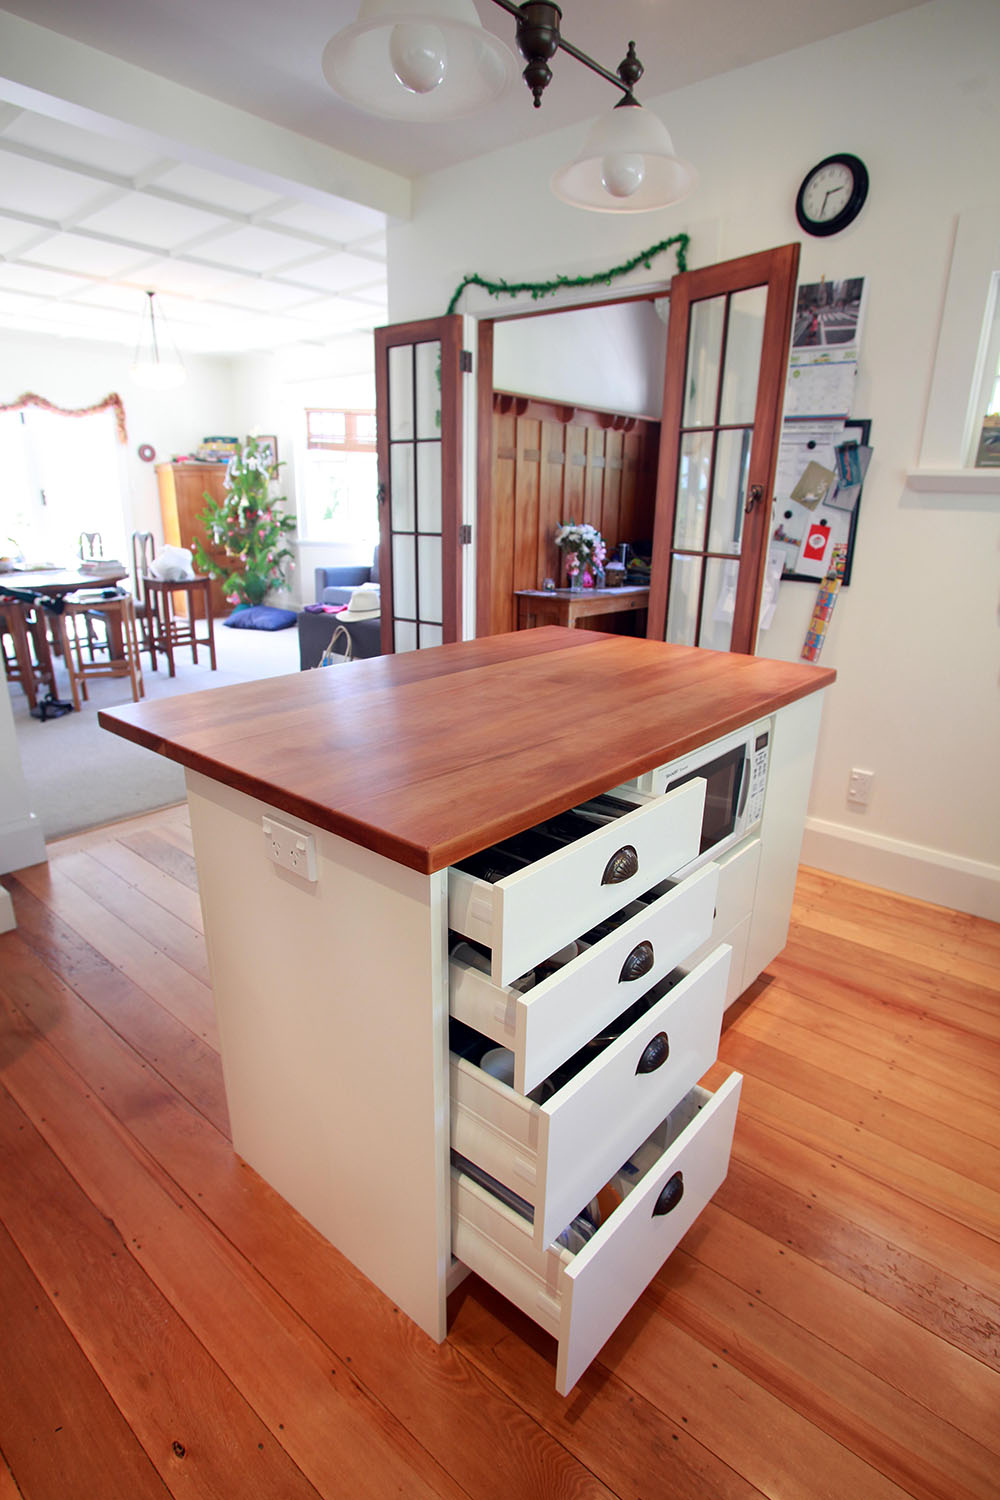 Matai top island unit with lacquered cabinetry